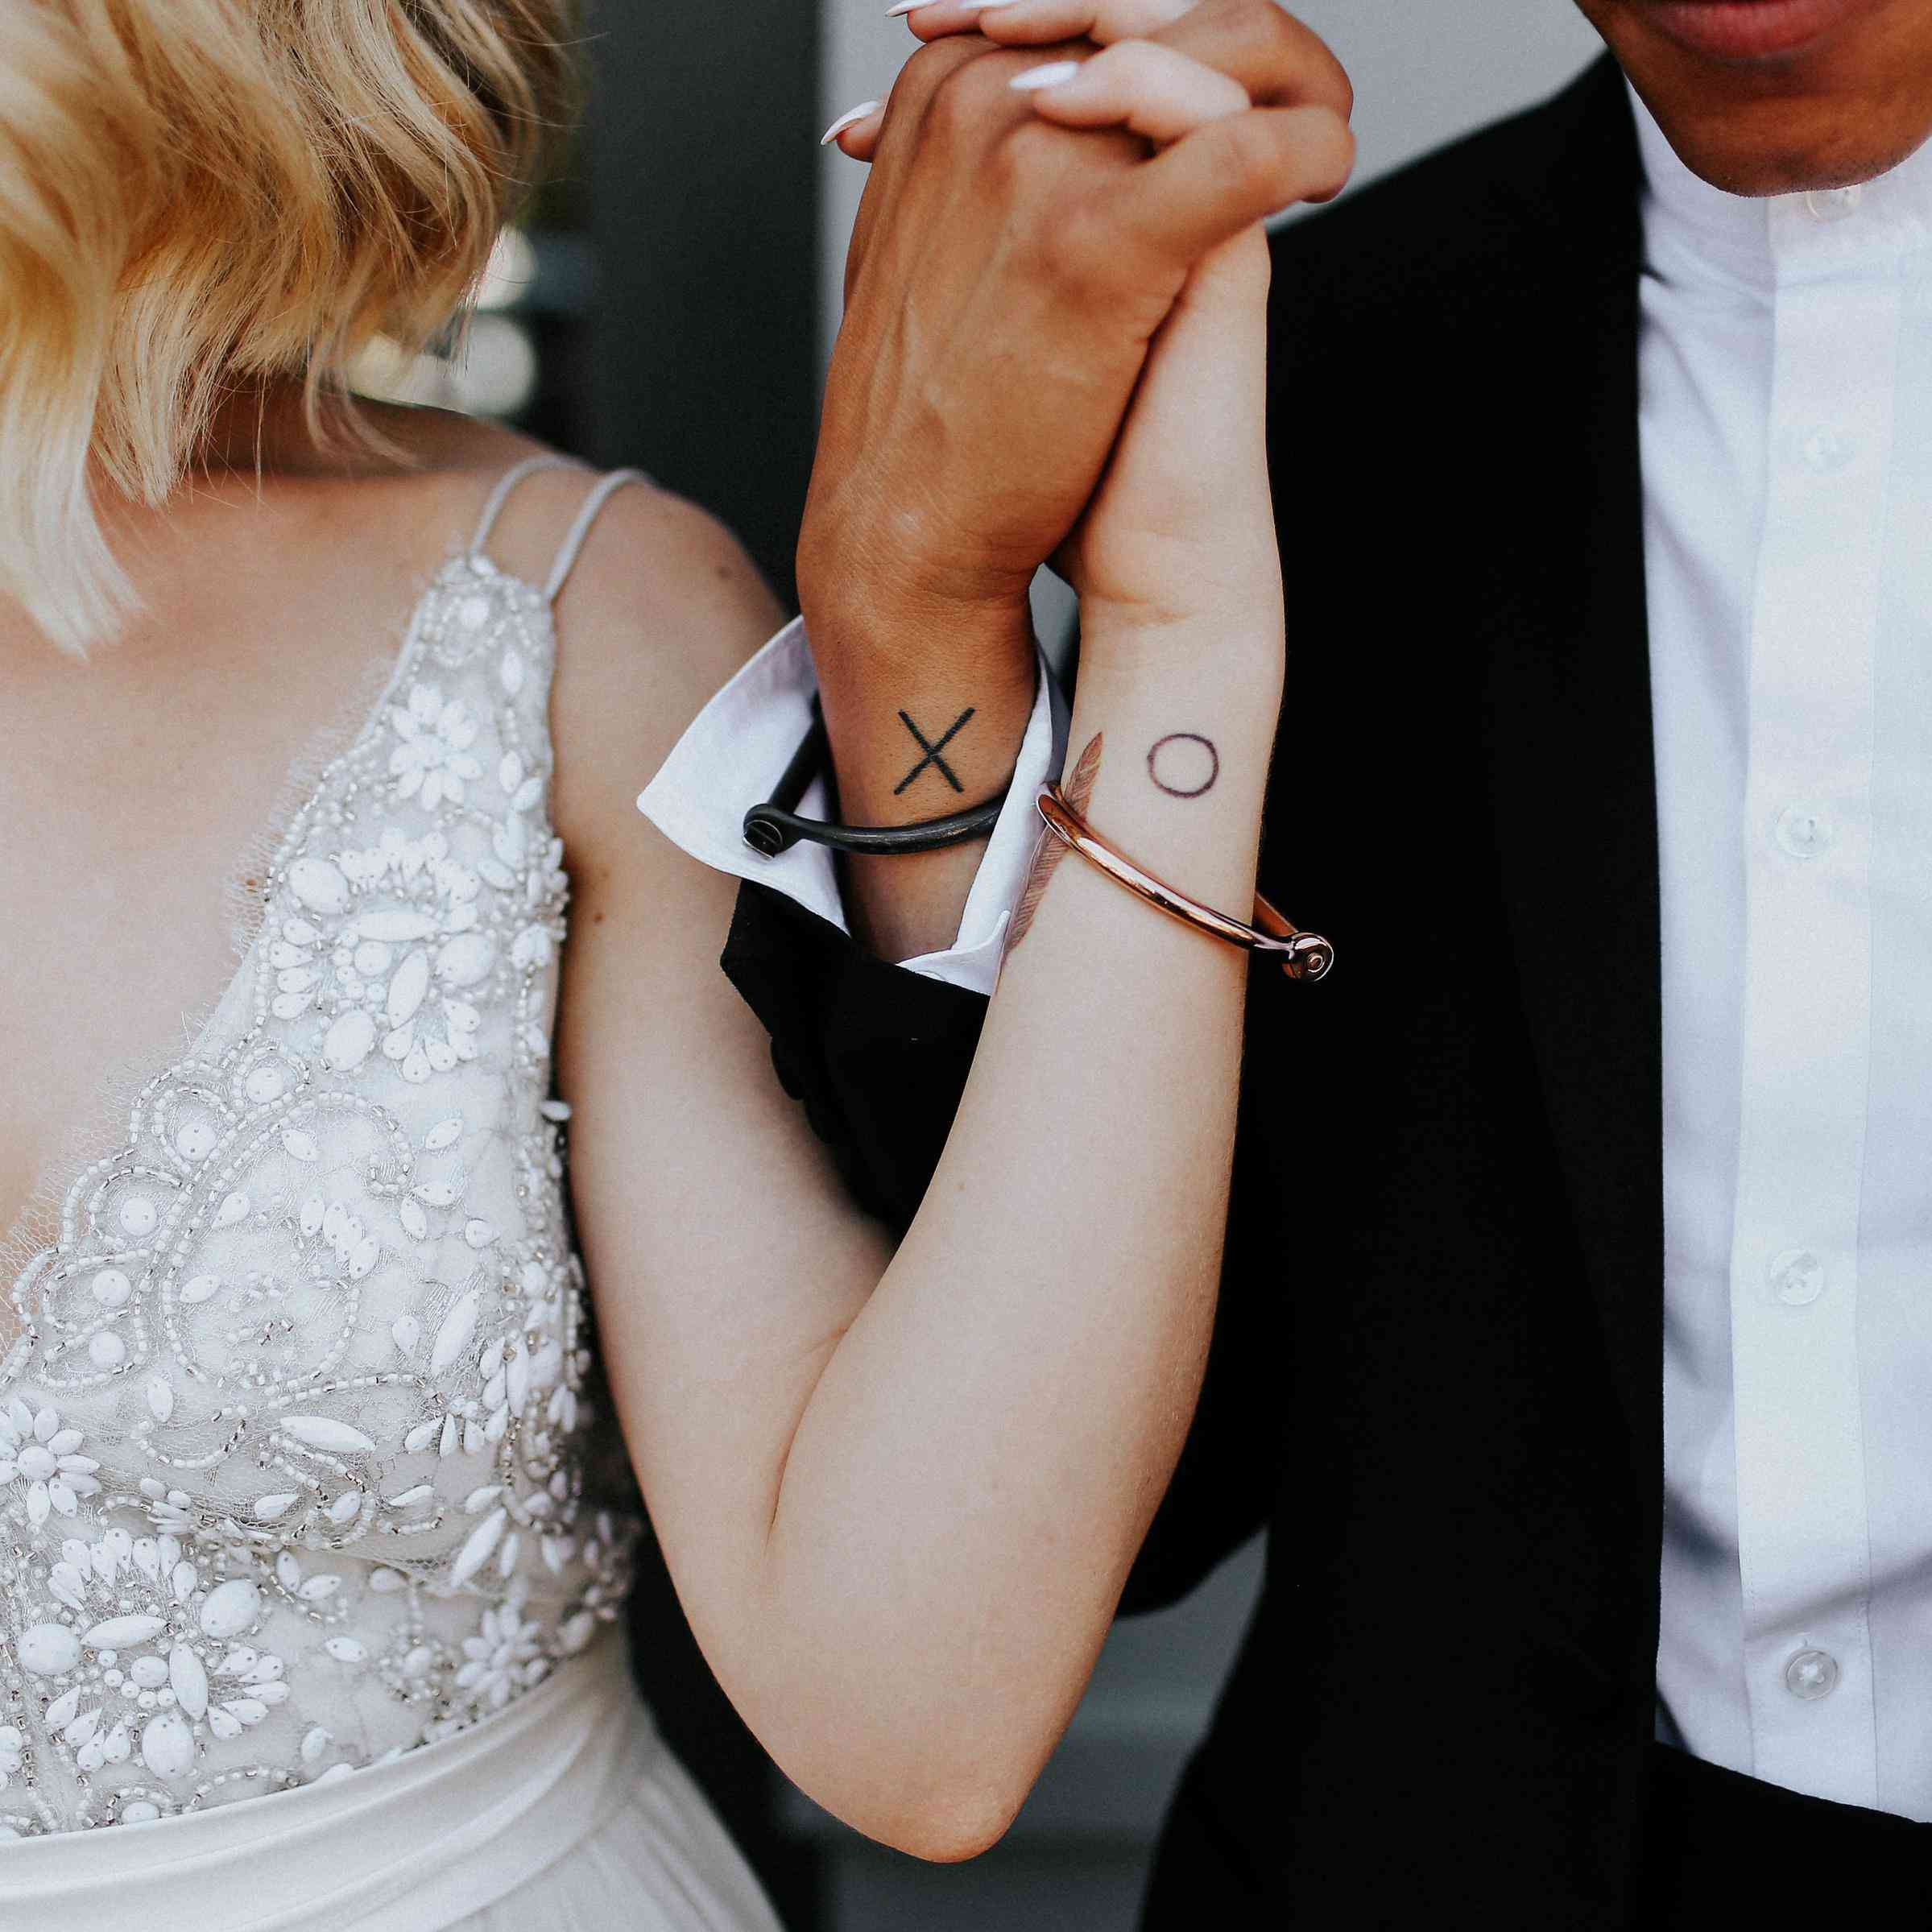 21 Cool Ideas For Couples Wedding Tattoos